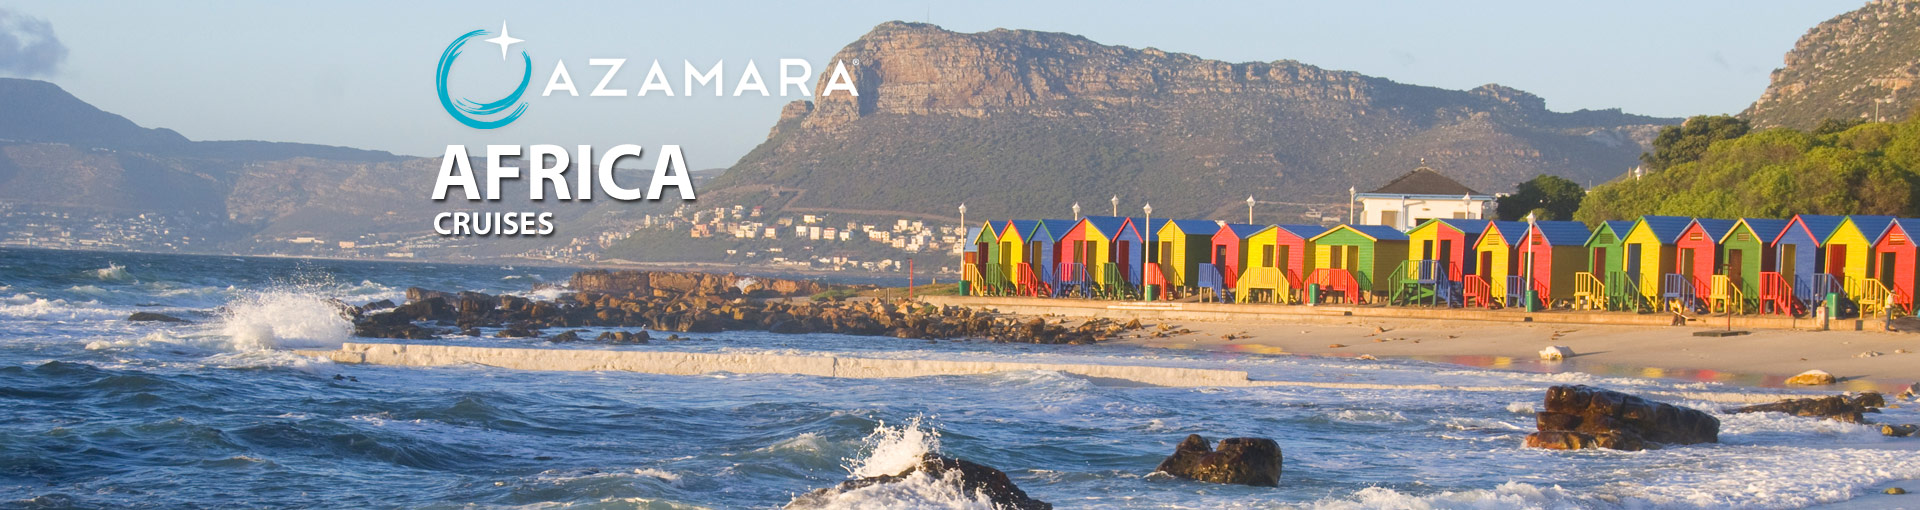 Azamara Africa Cruises, 2019 and 2020 Africa Azamara Club Cruises